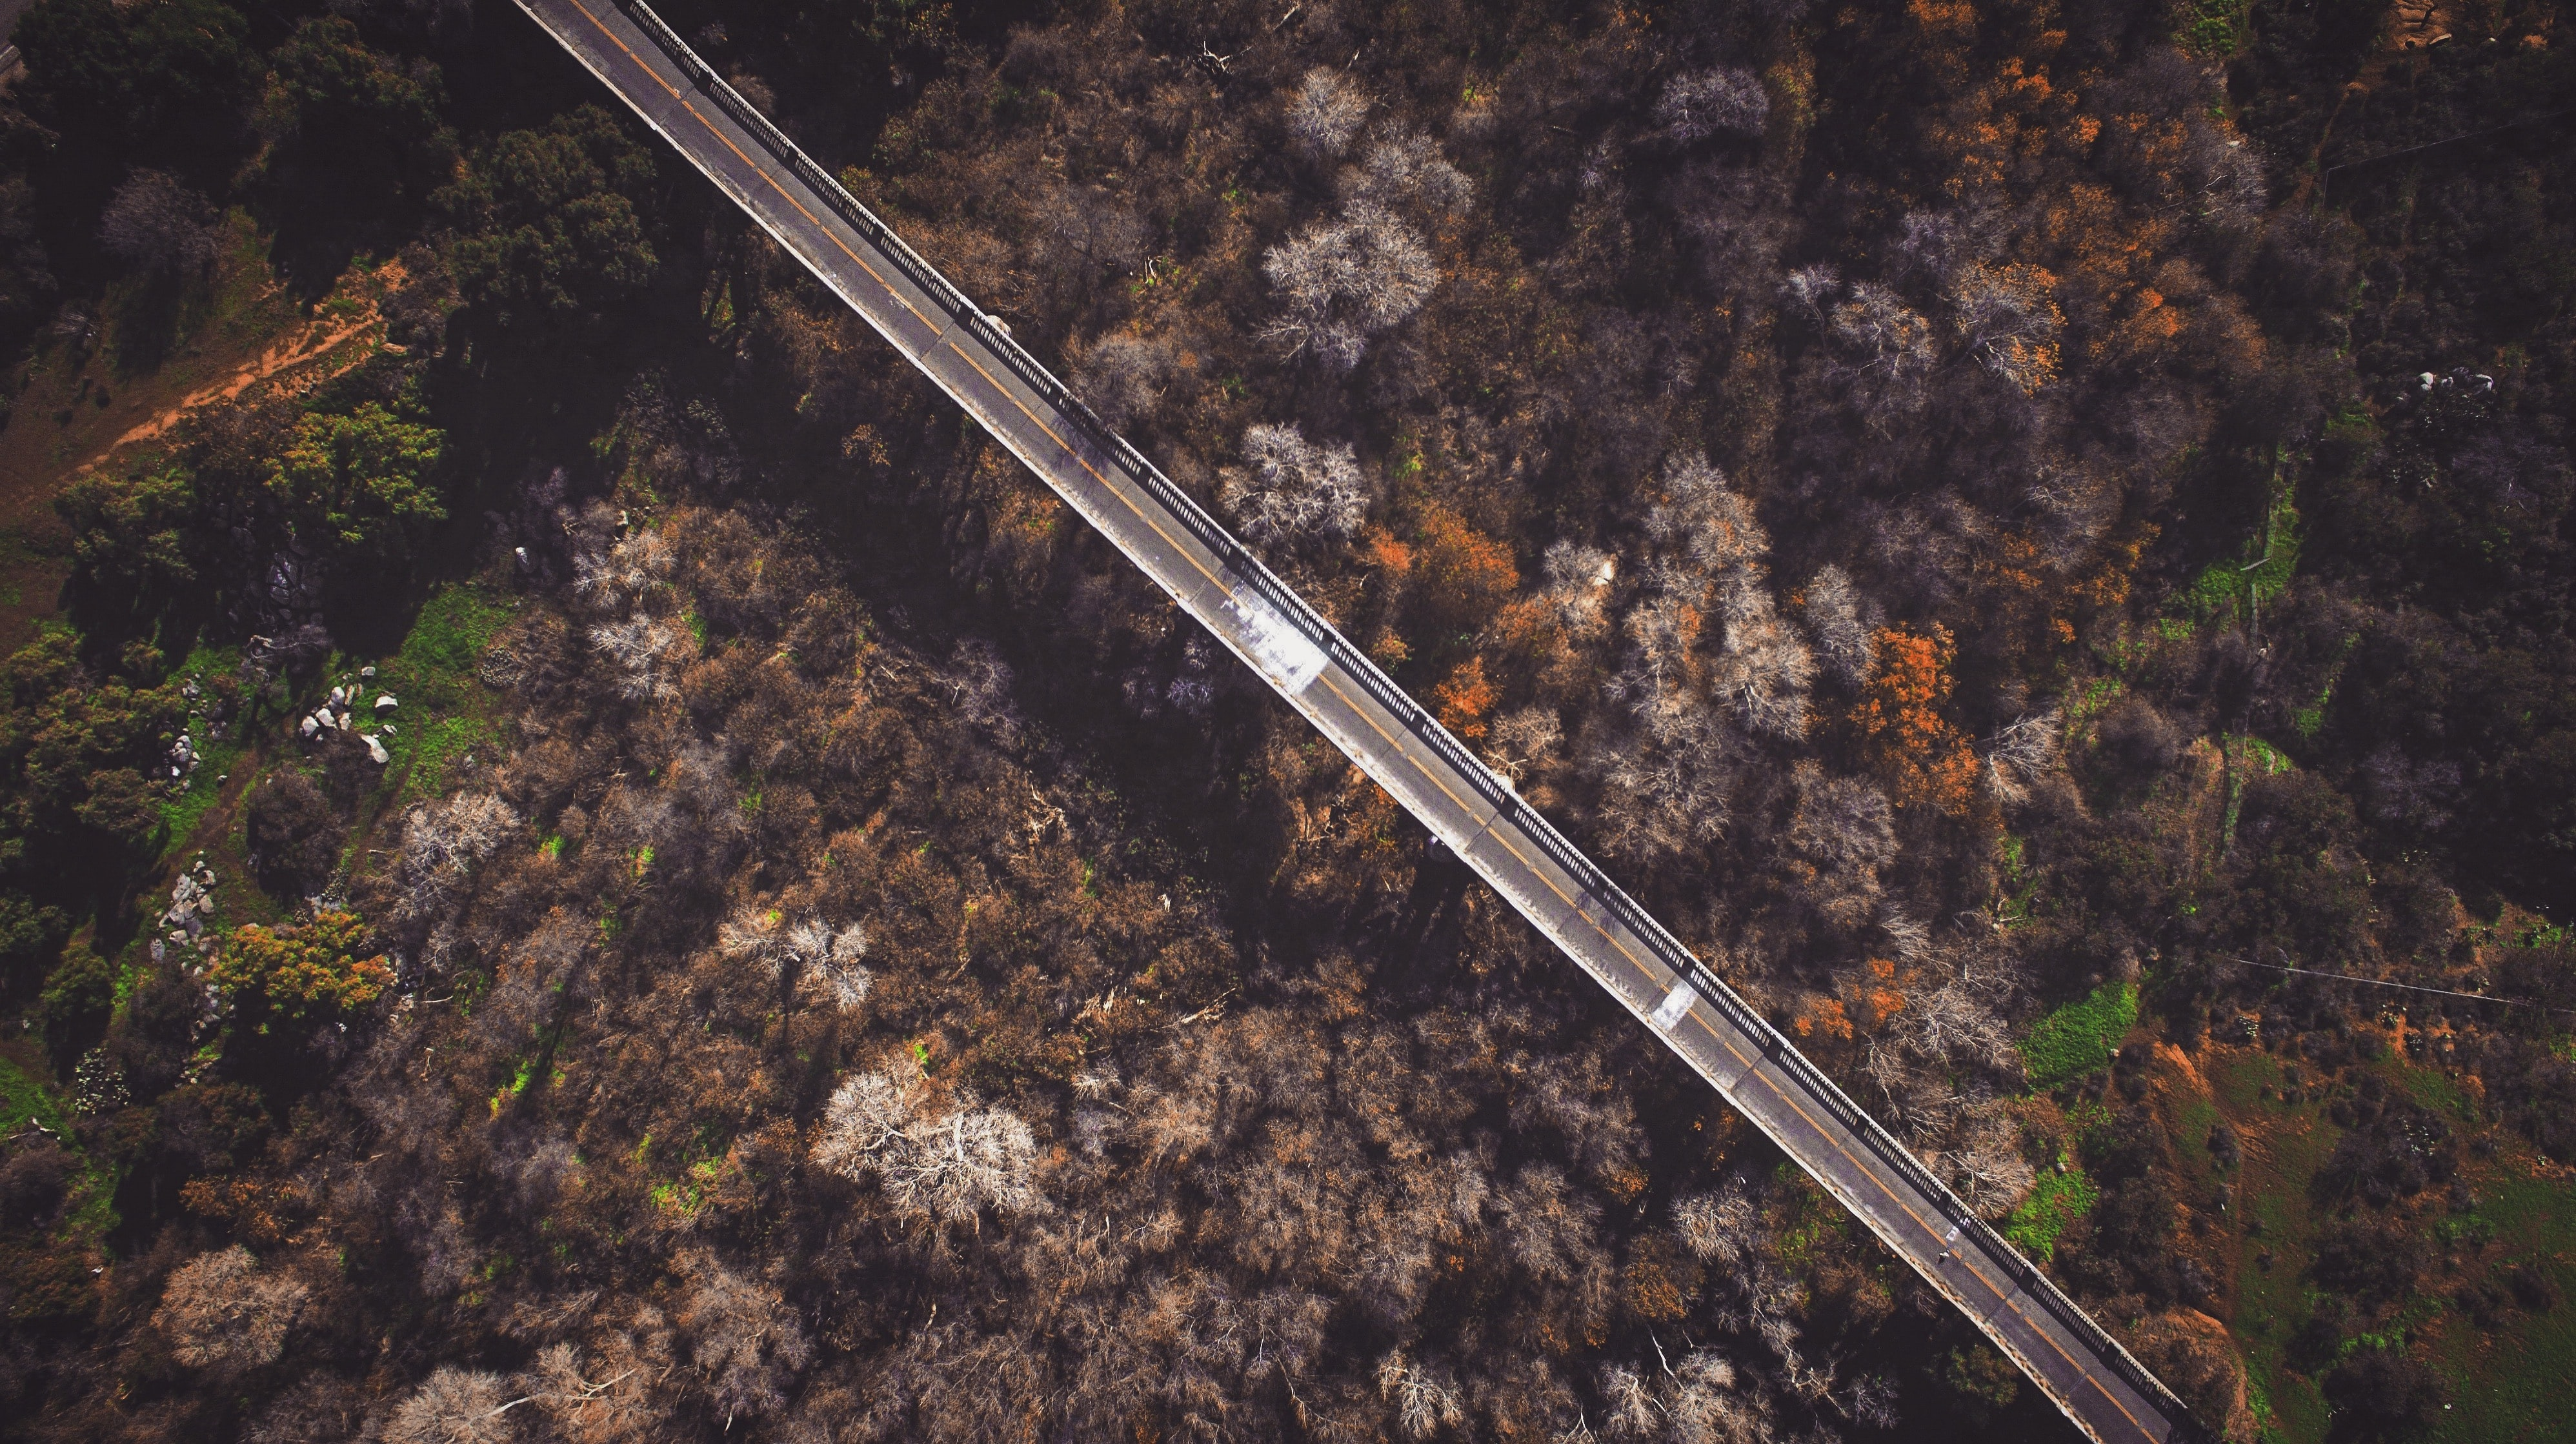 bird's eye view of empty bridge over trees